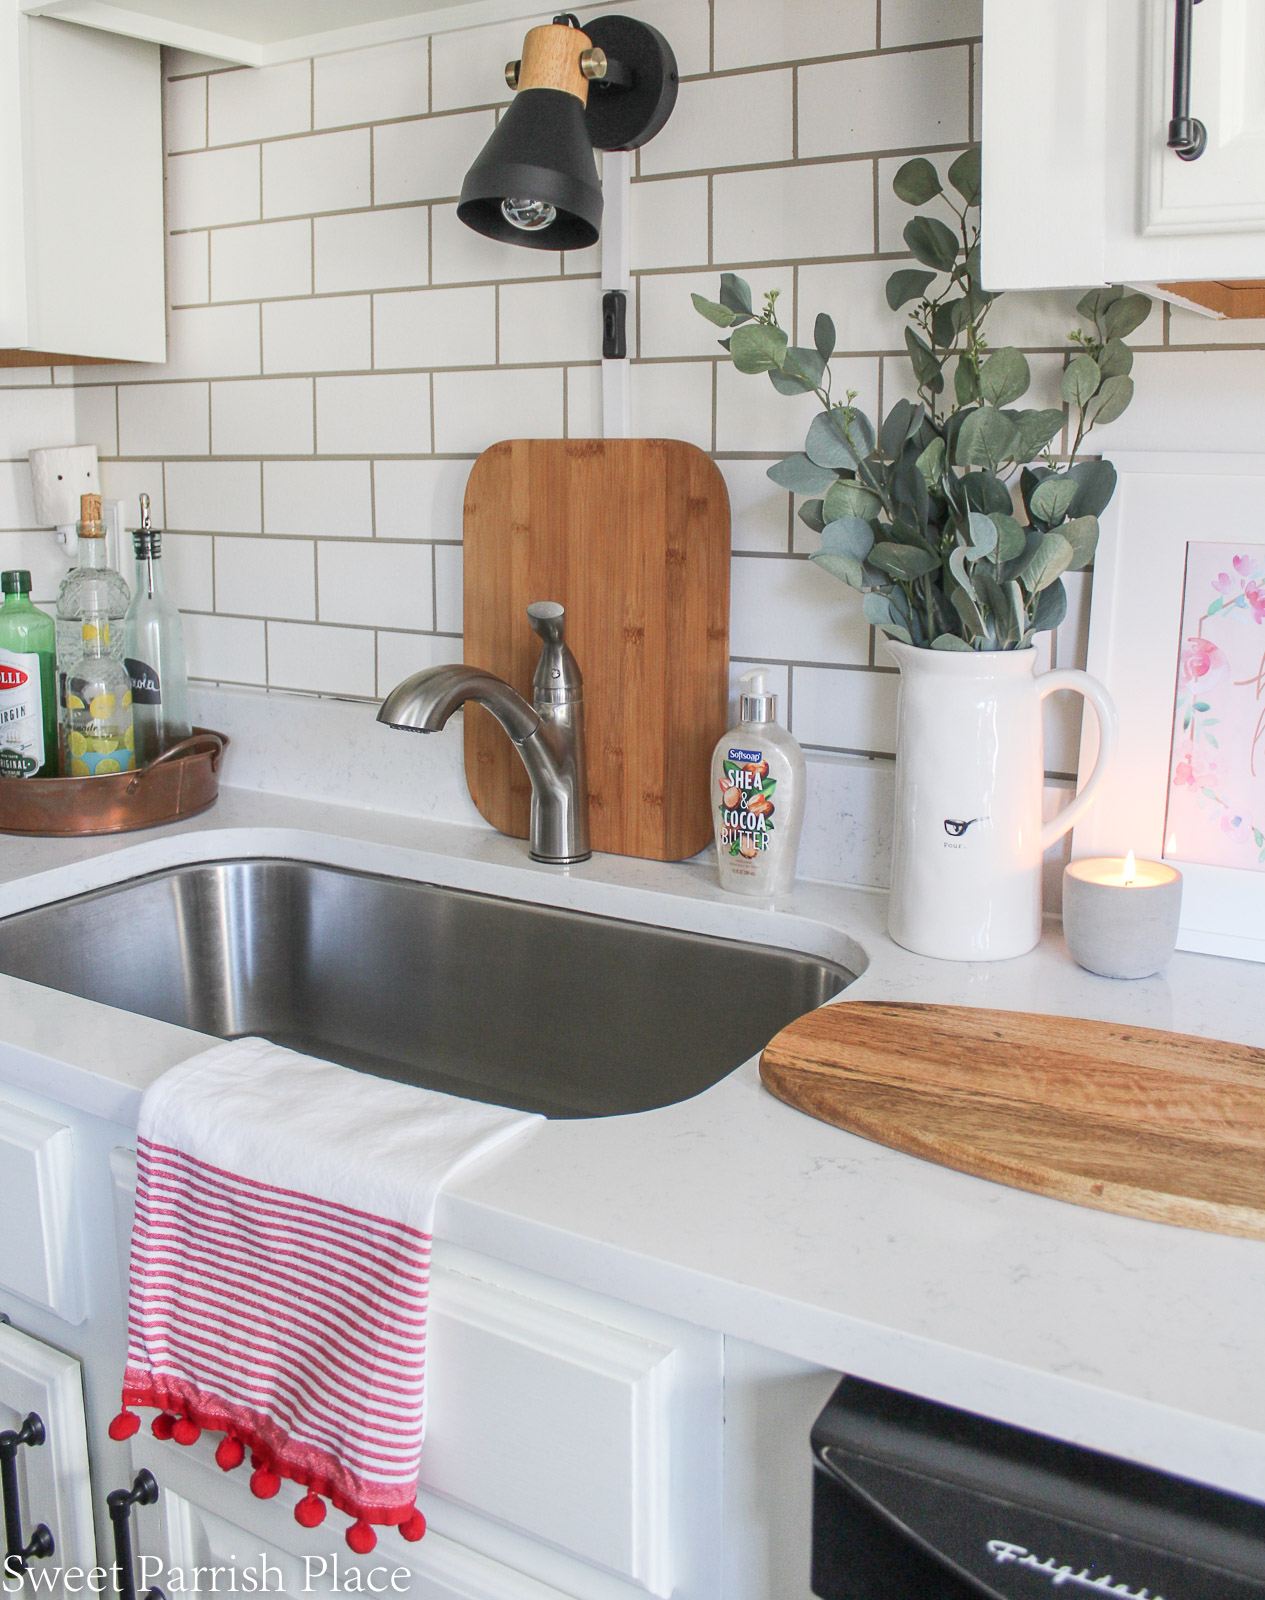 Budget Friendly Ideas to Freshen Up Your Kitchen- add faux greenery or flowers